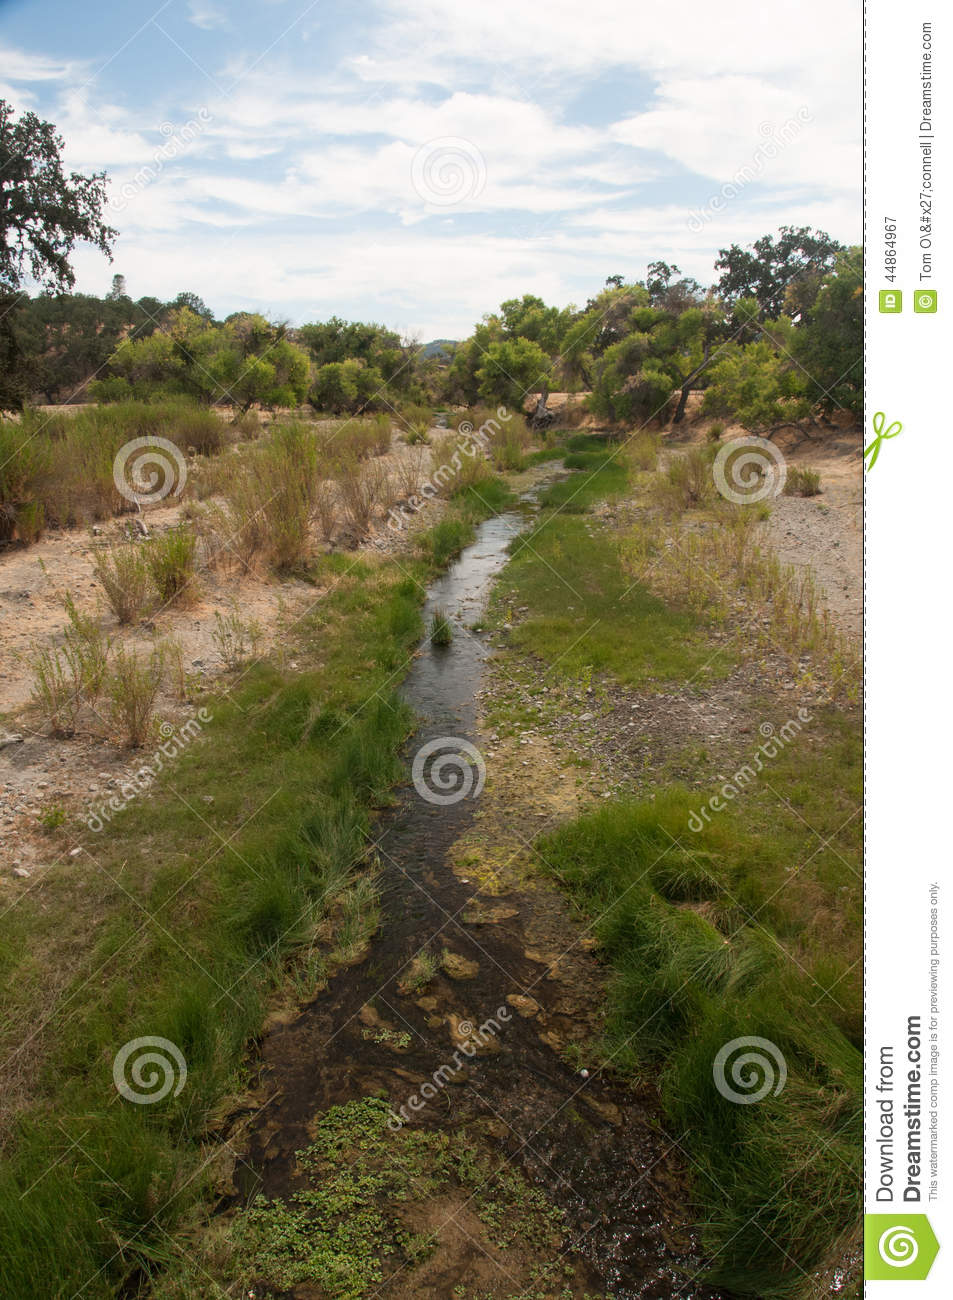 is usually dry. It is the exact fault line of the San Andreas Fault ...